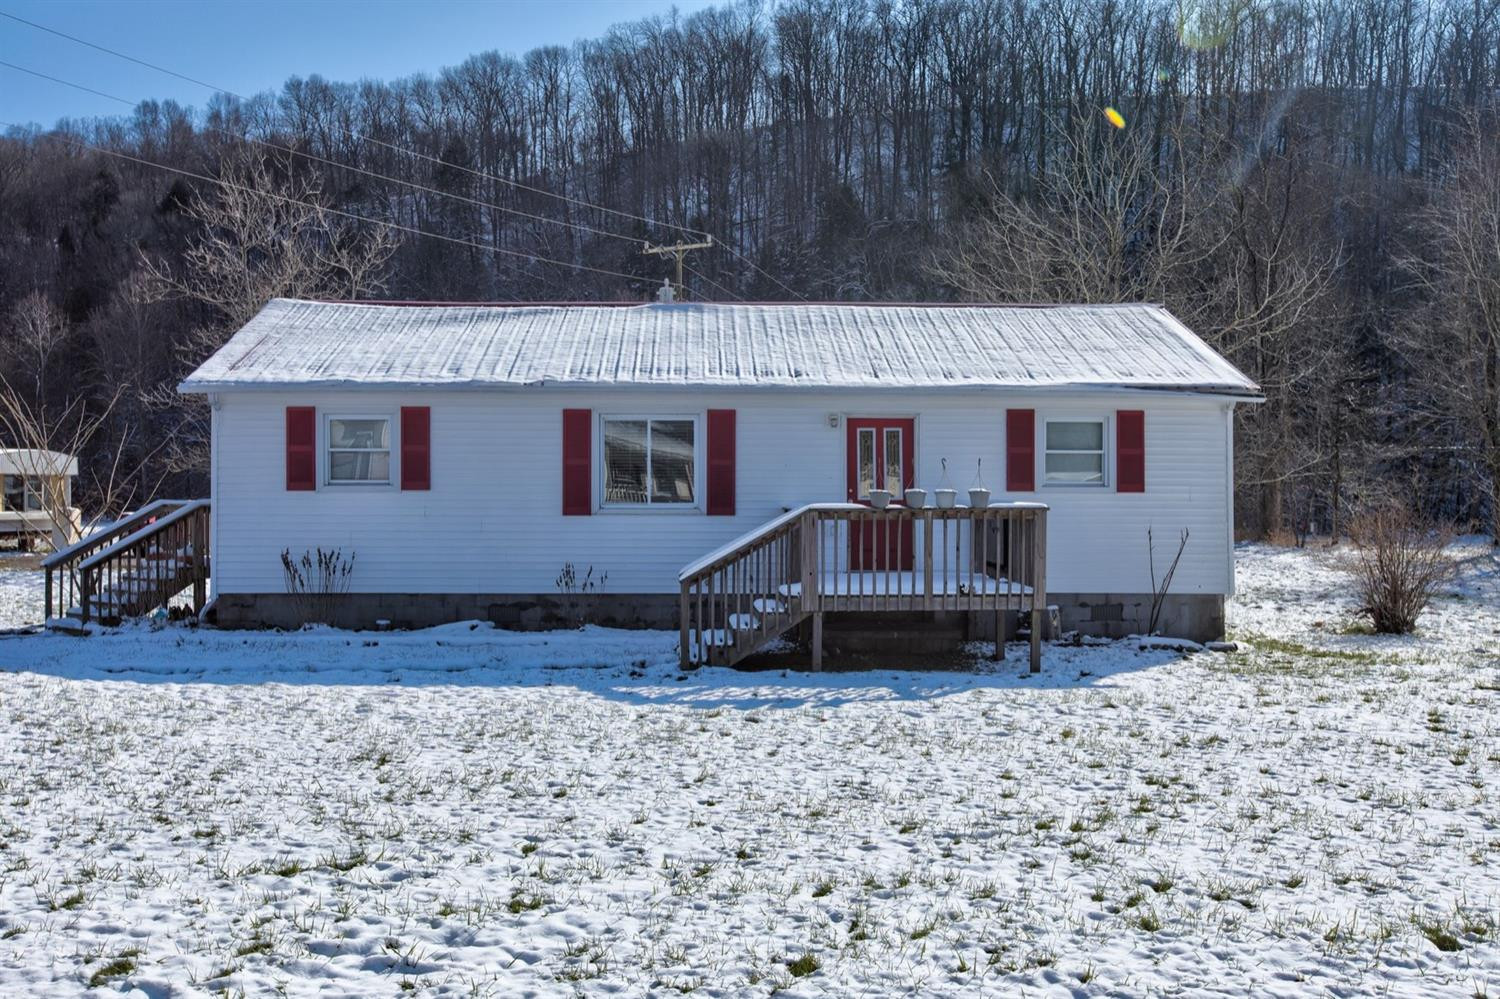 6473 Highway 460 W, Means, KY 40346